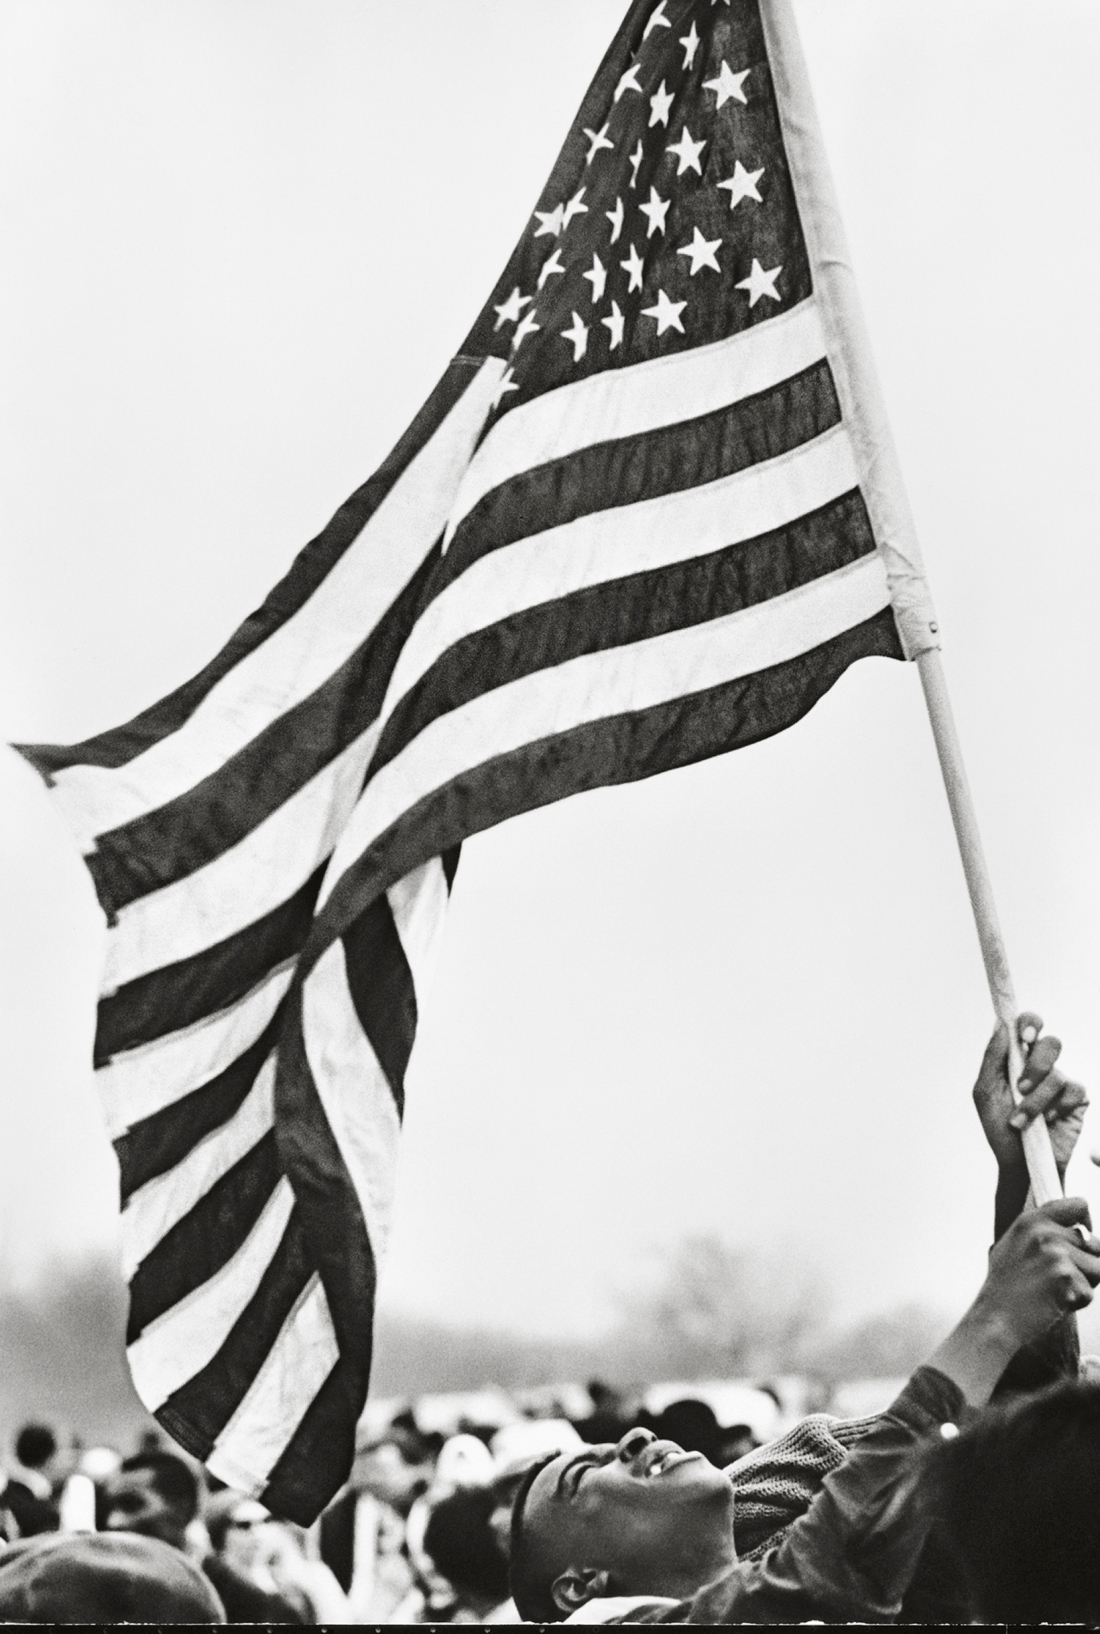 Selma March, Flag, 1965. © Steve Schapiro, courtesy Howard Greenberg Gallery, New York